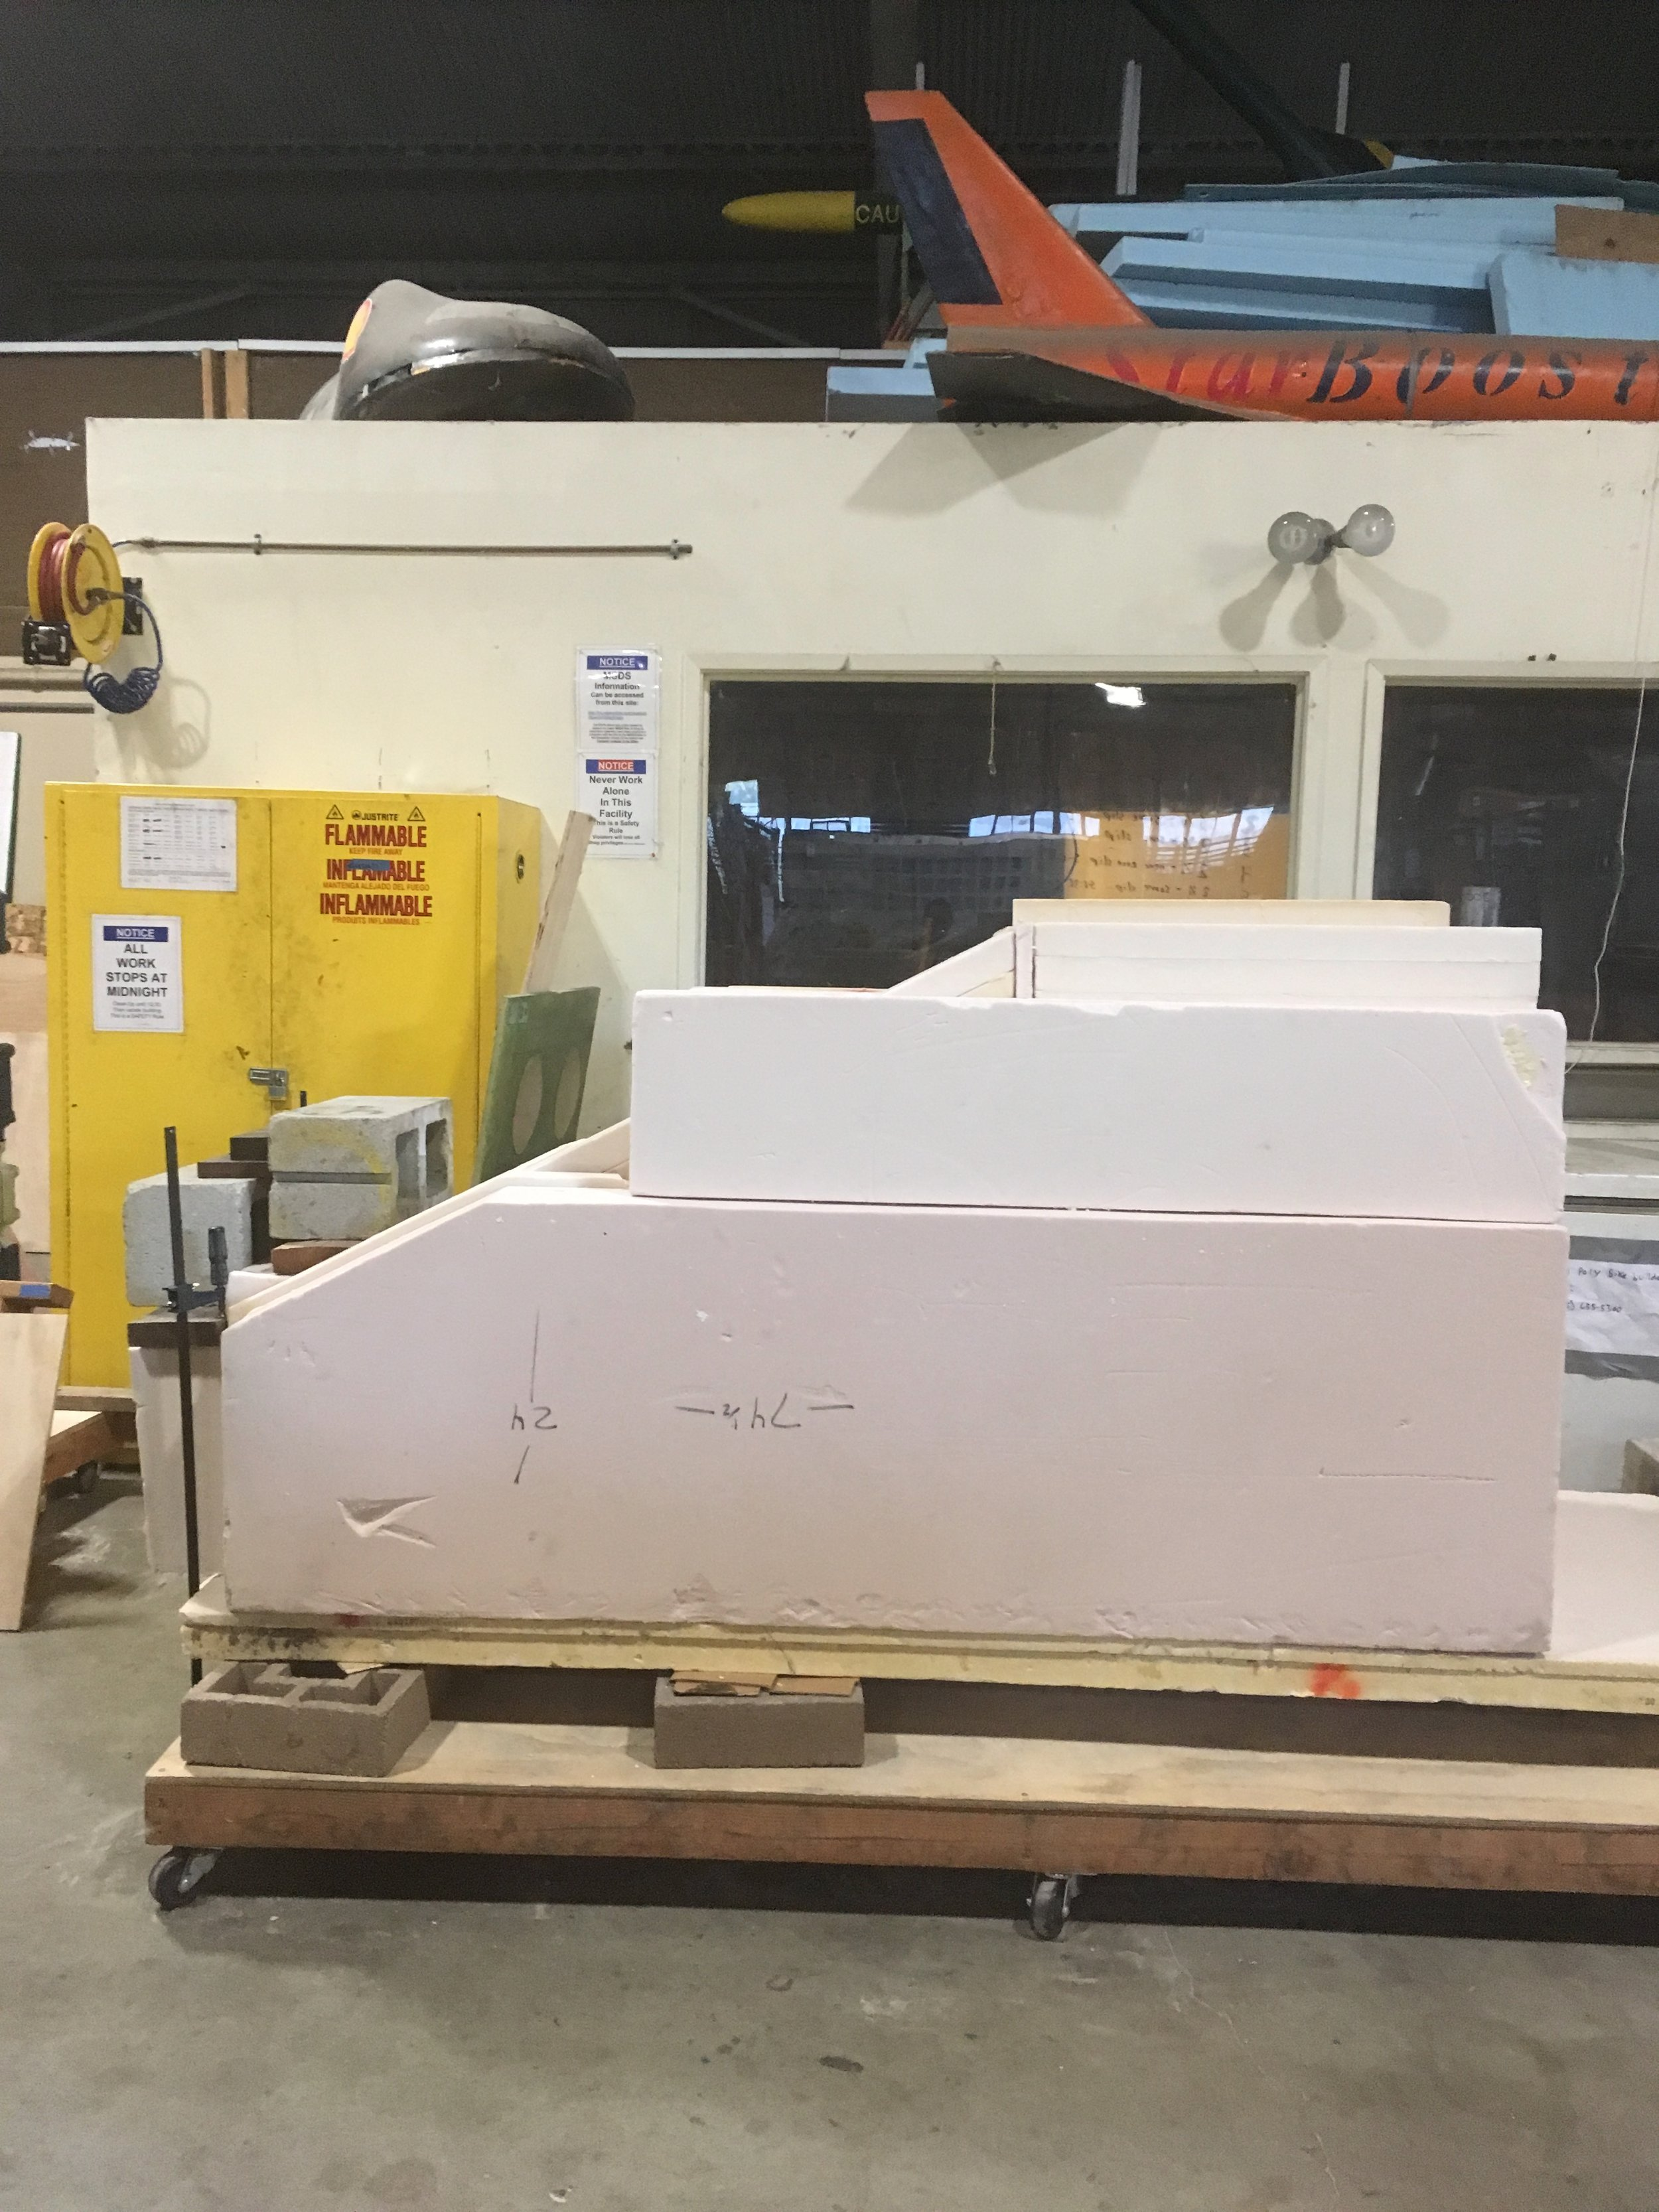 High-density foam was added to the frame and it was ready to be shaped.